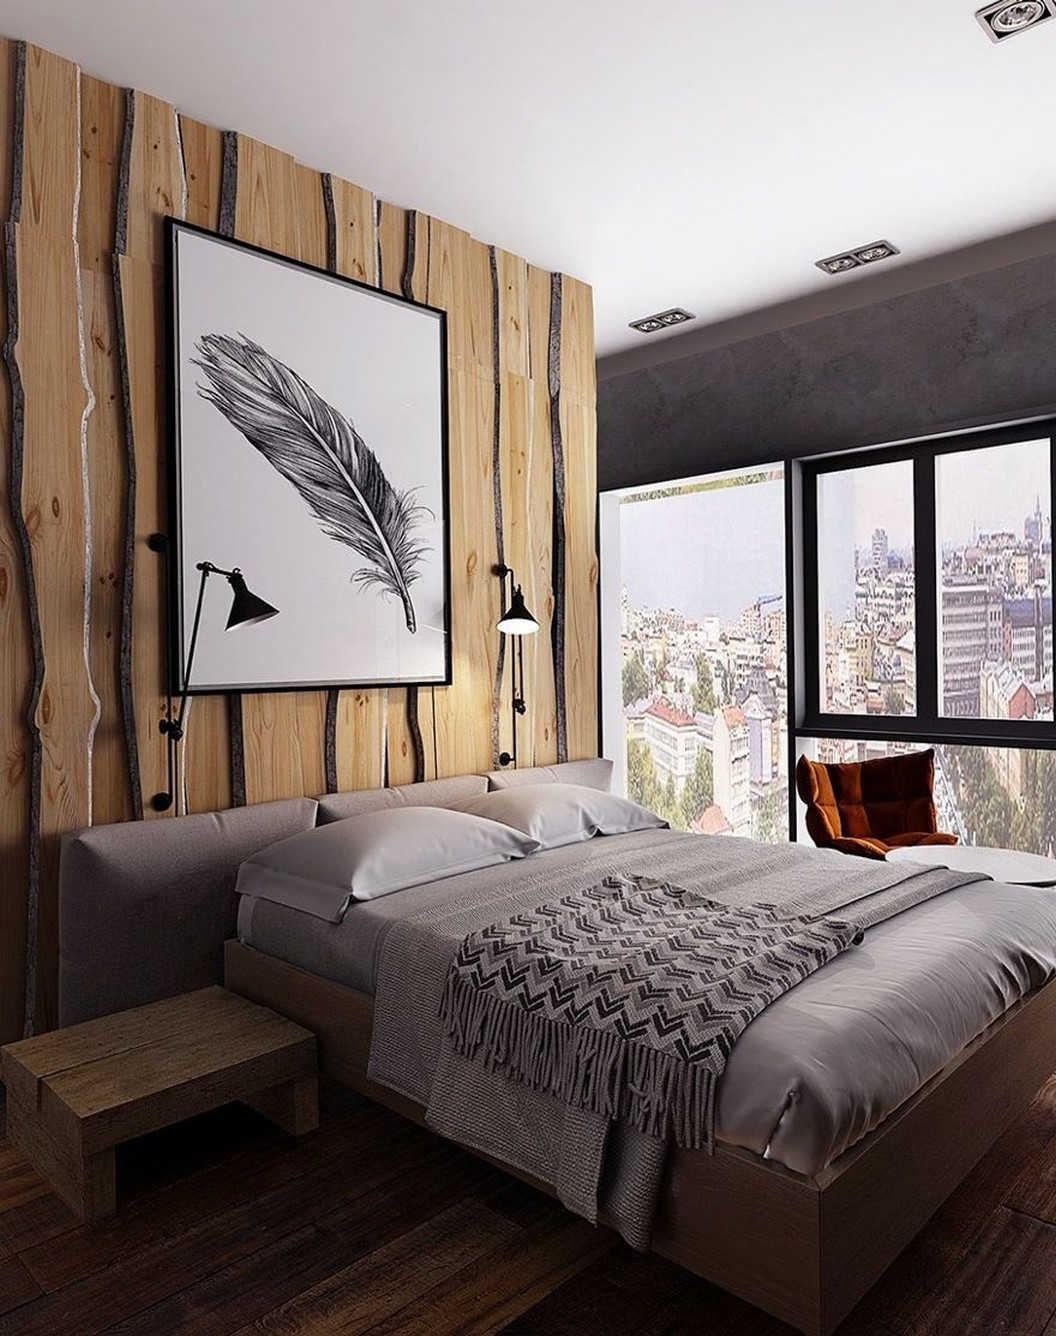 64 Rustic Bedroom Furniture How to Look Elegance Home Decor 56